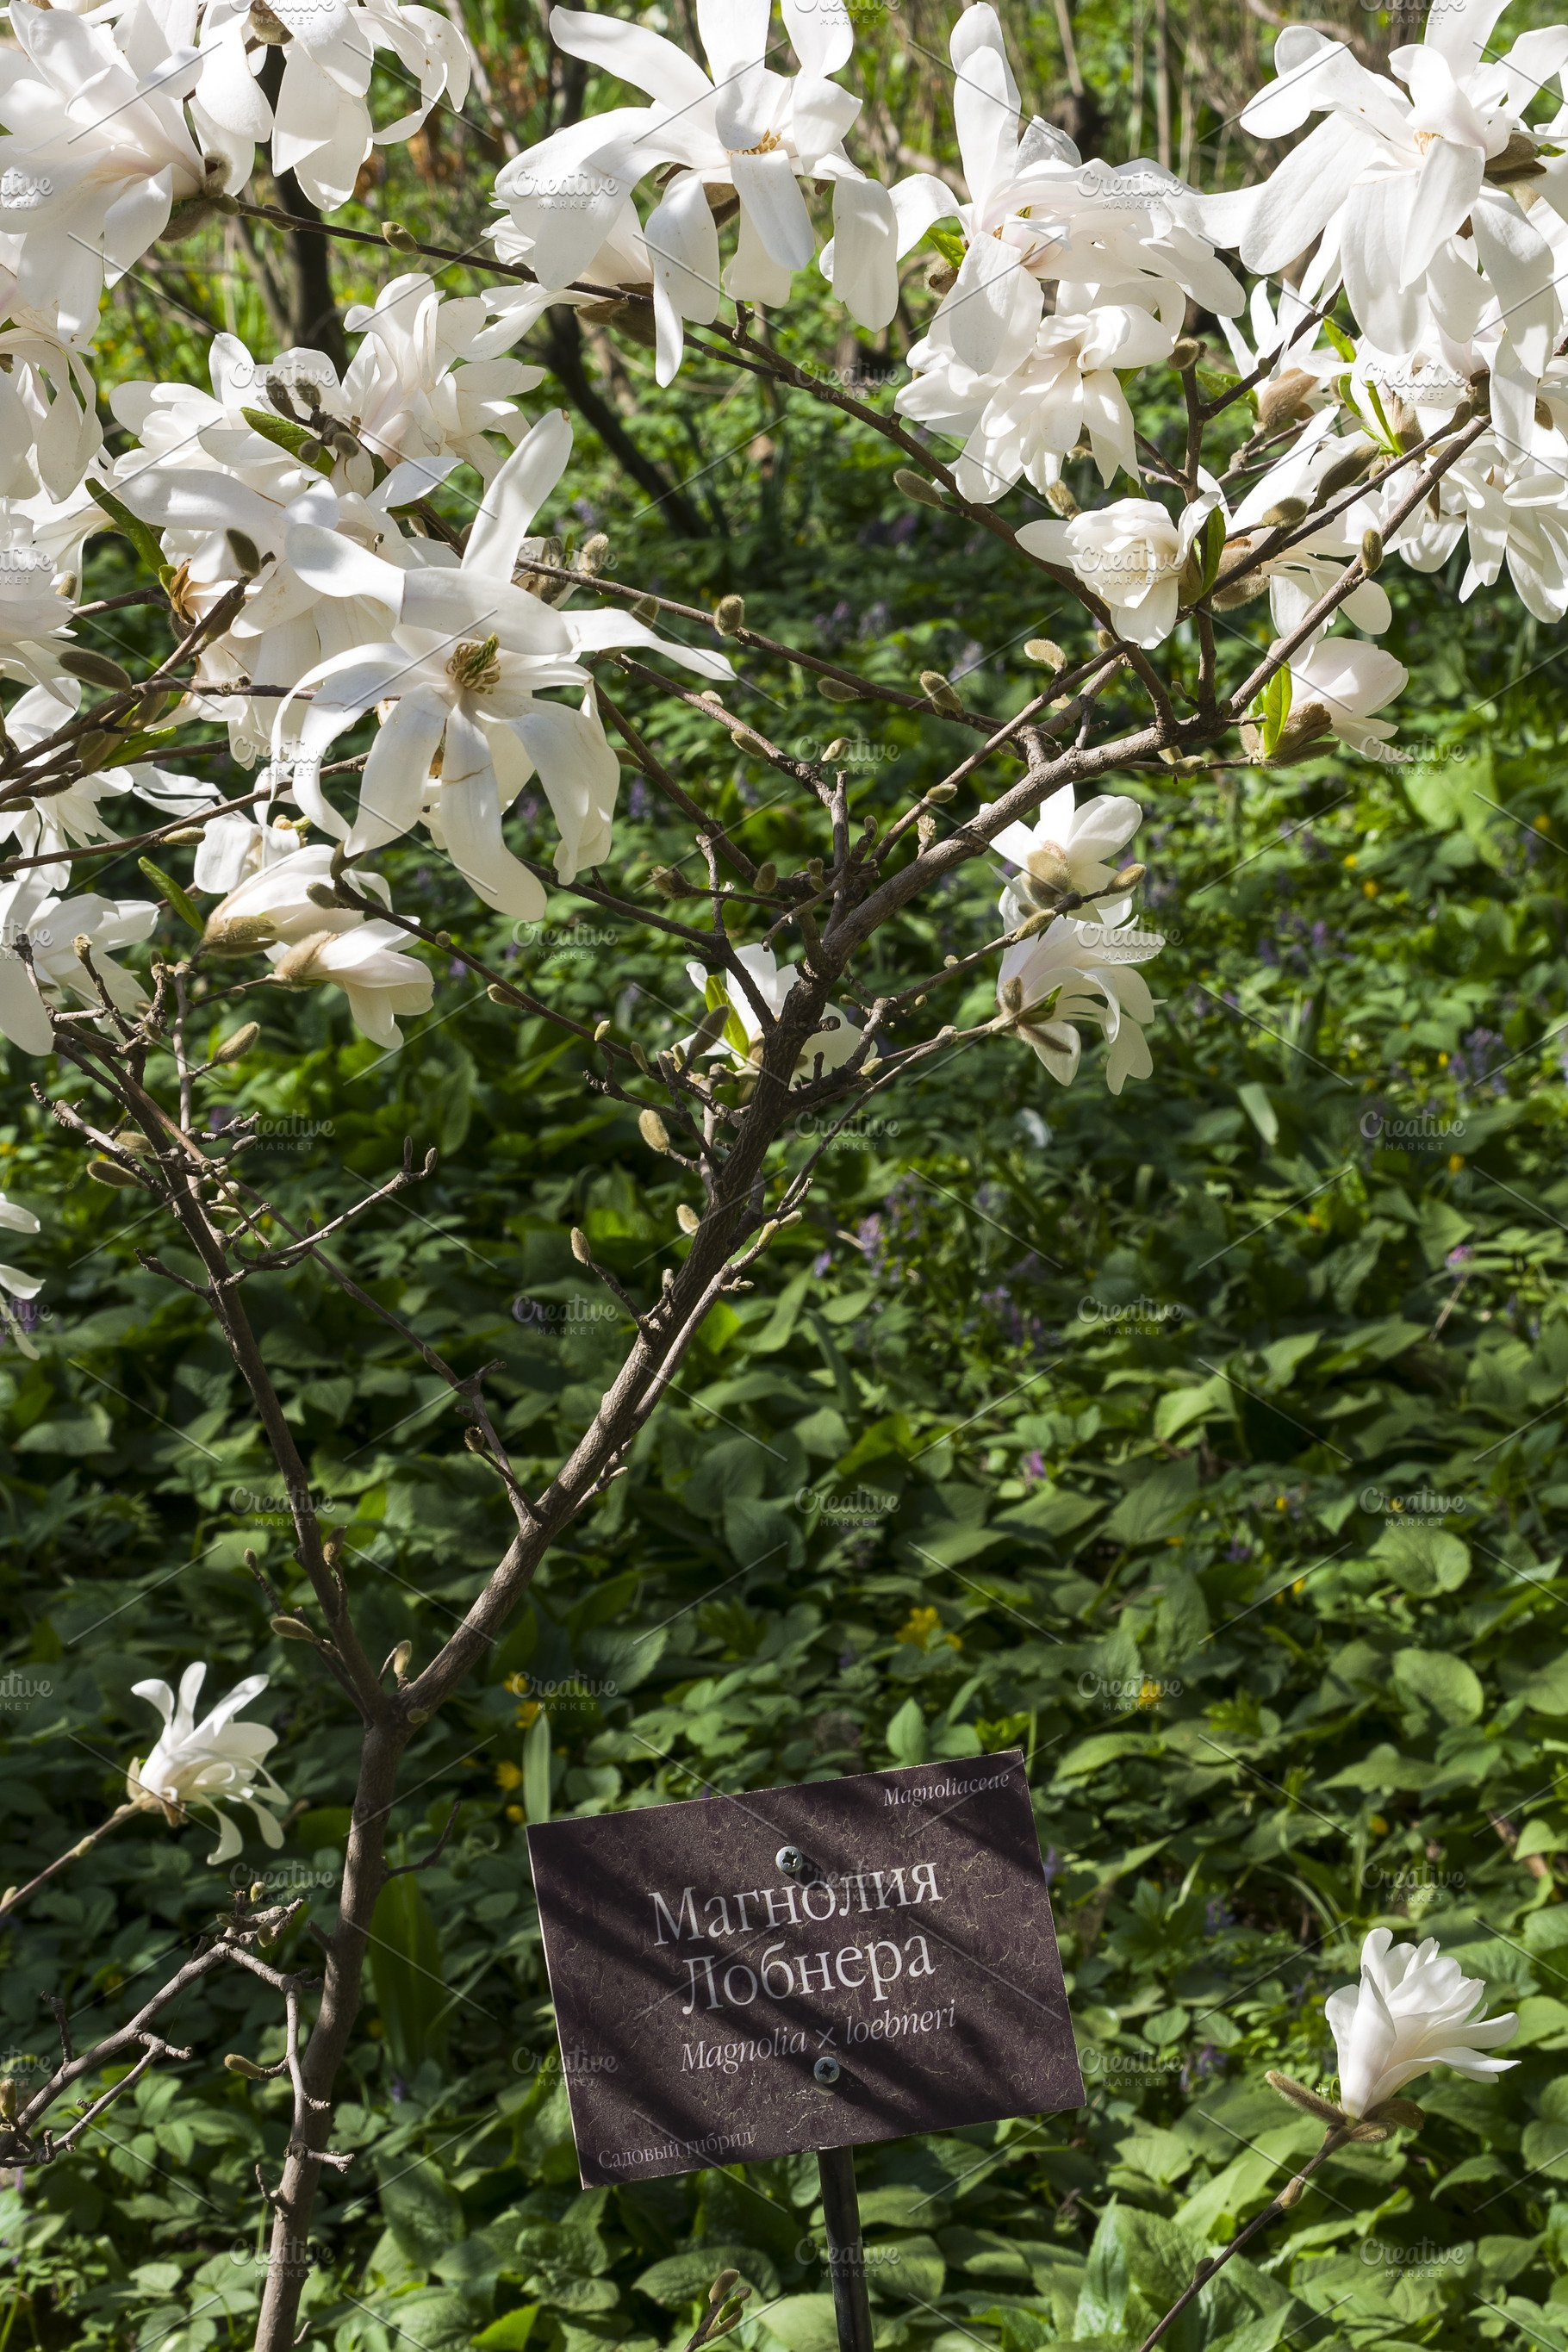 Blooming Magnolia Loebneri High Quality Nature Stock Photos